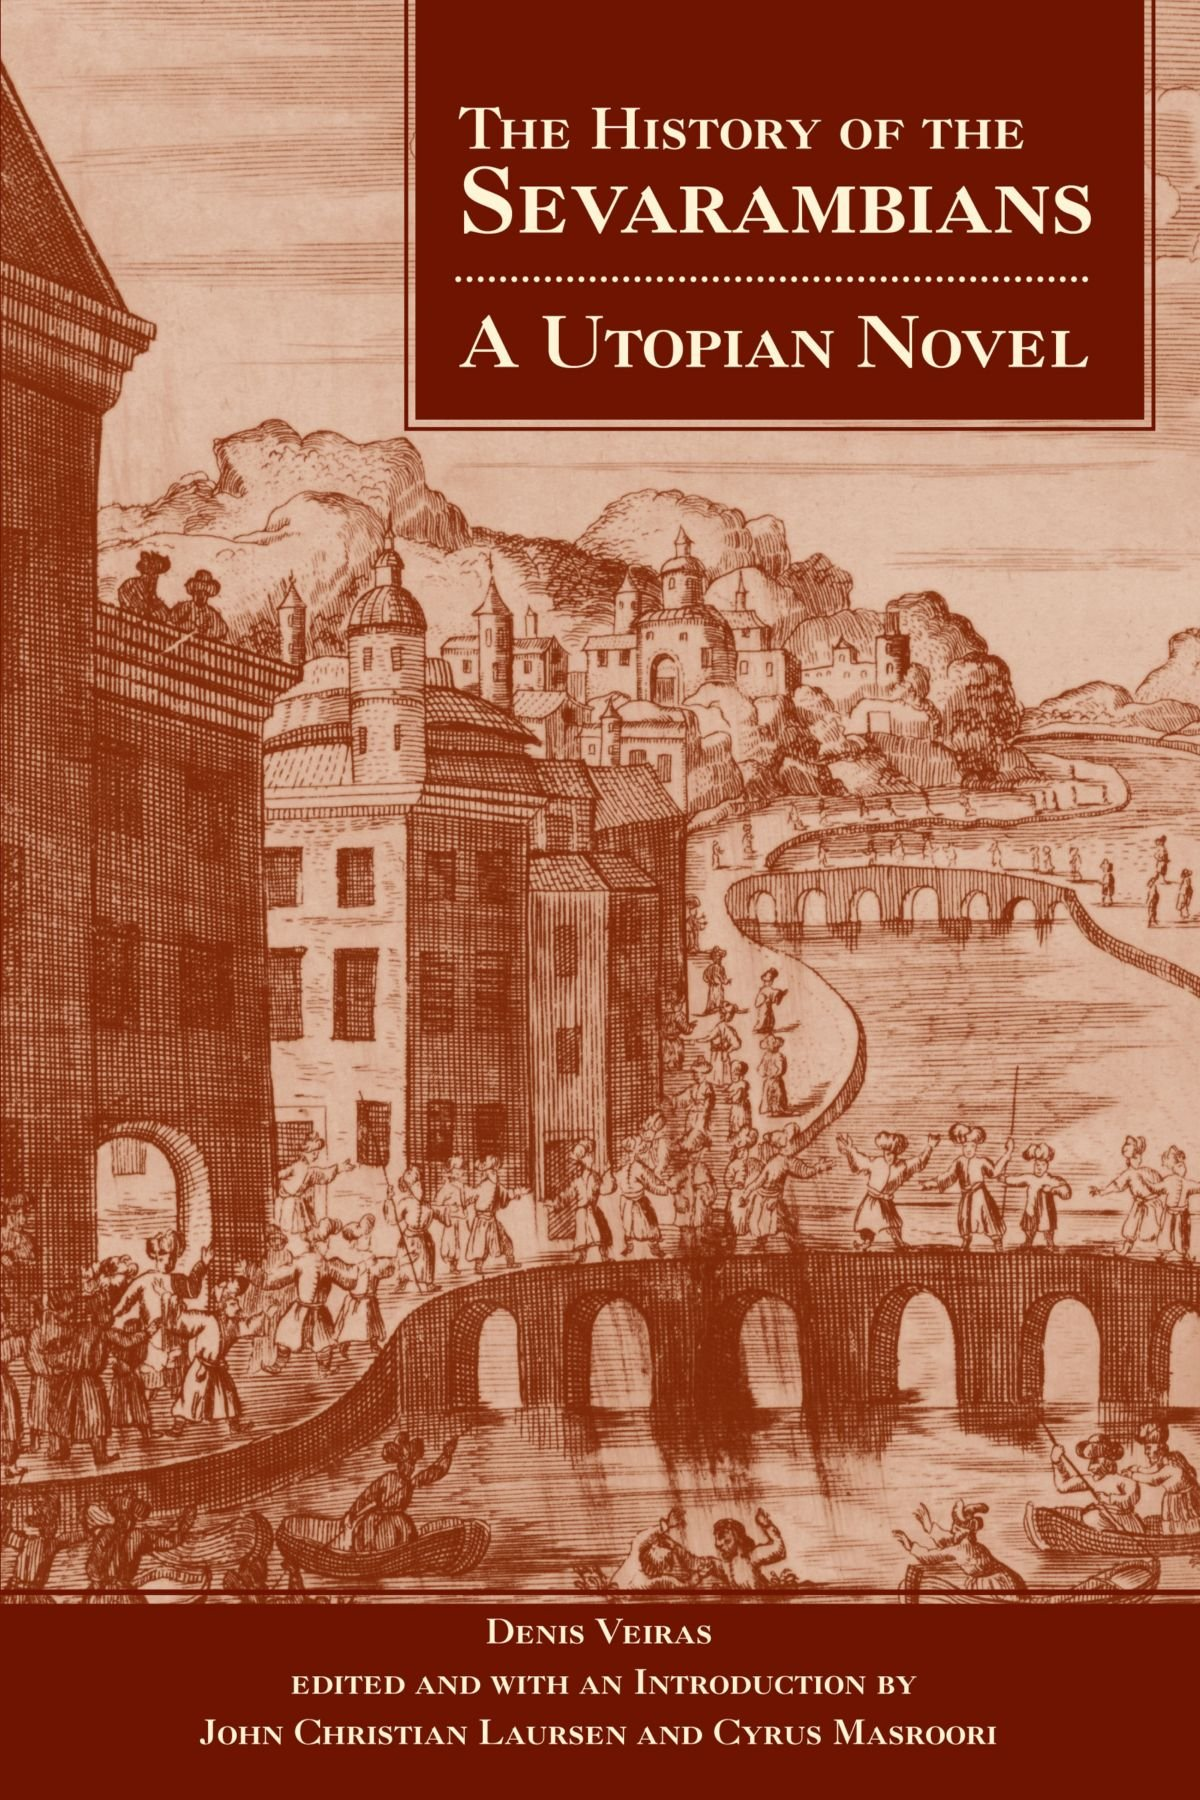 Read Online The History of the Sevarambians: A Utopian Novel PDF